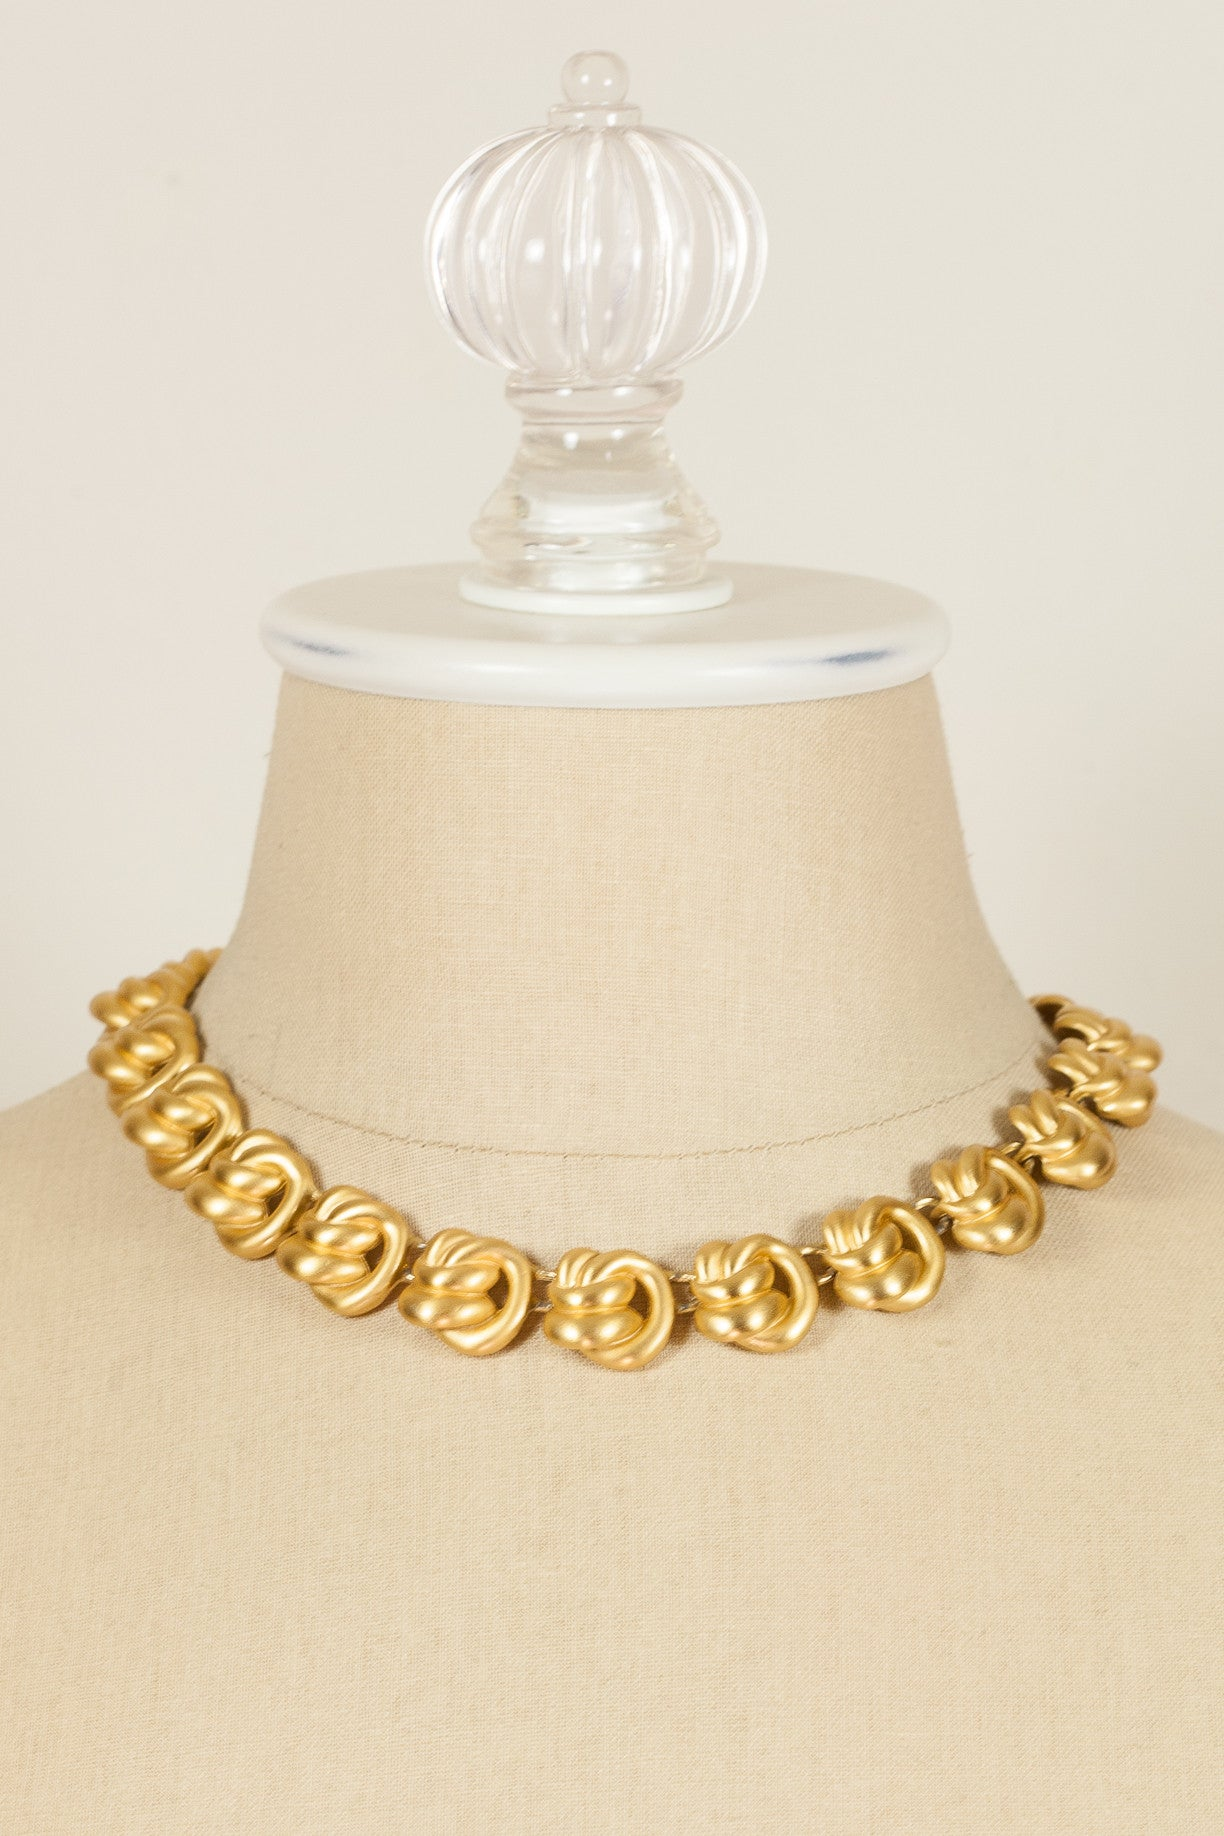 90's__Anne Klein__Gold Knot Necklace